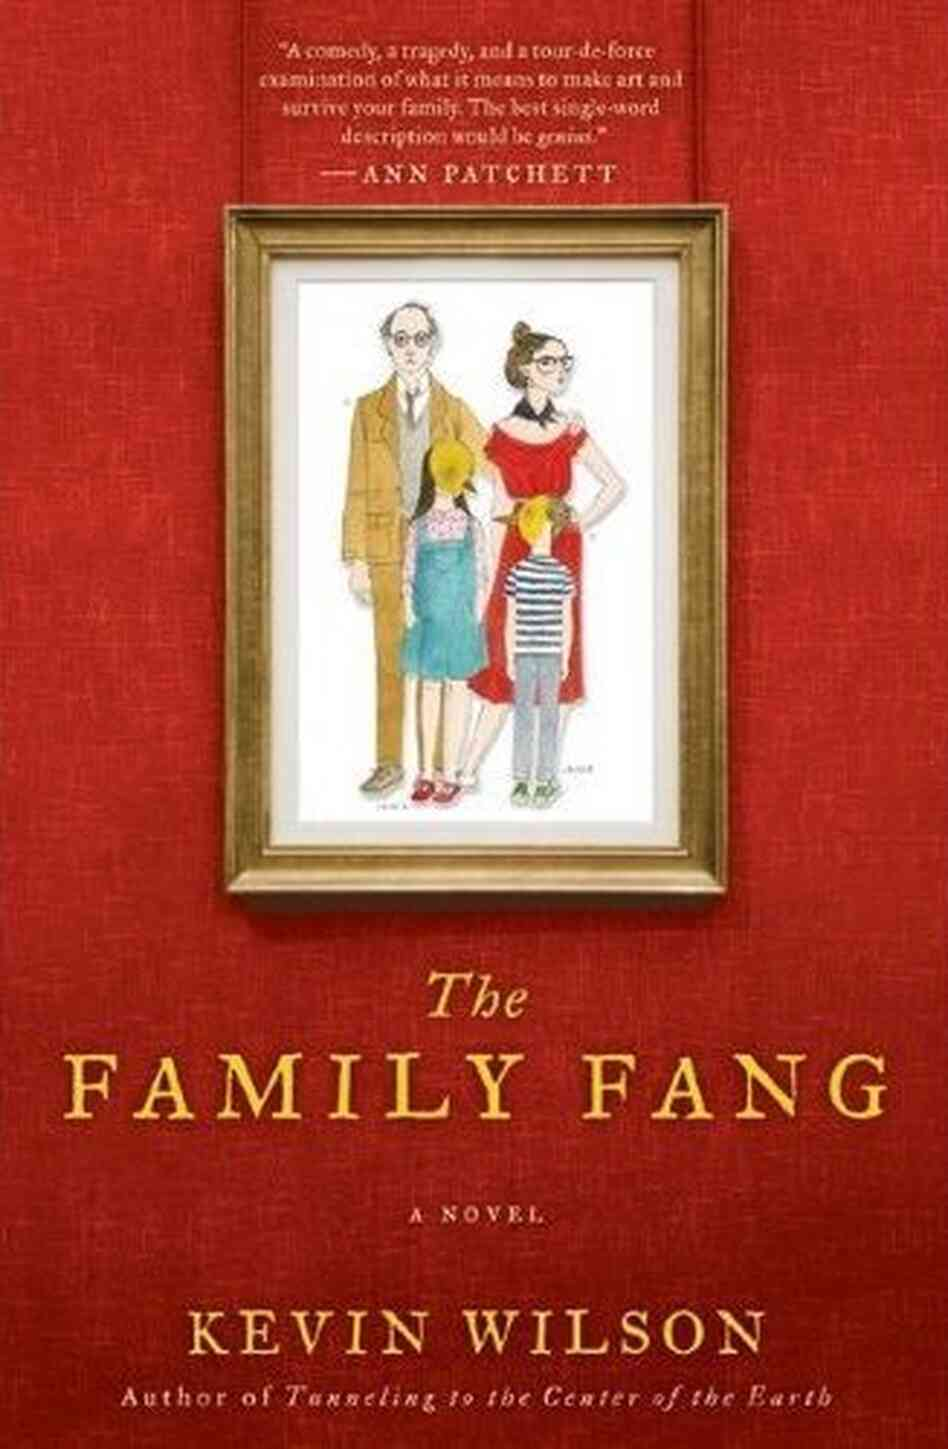 The Family Fang, by Kevin Wilson